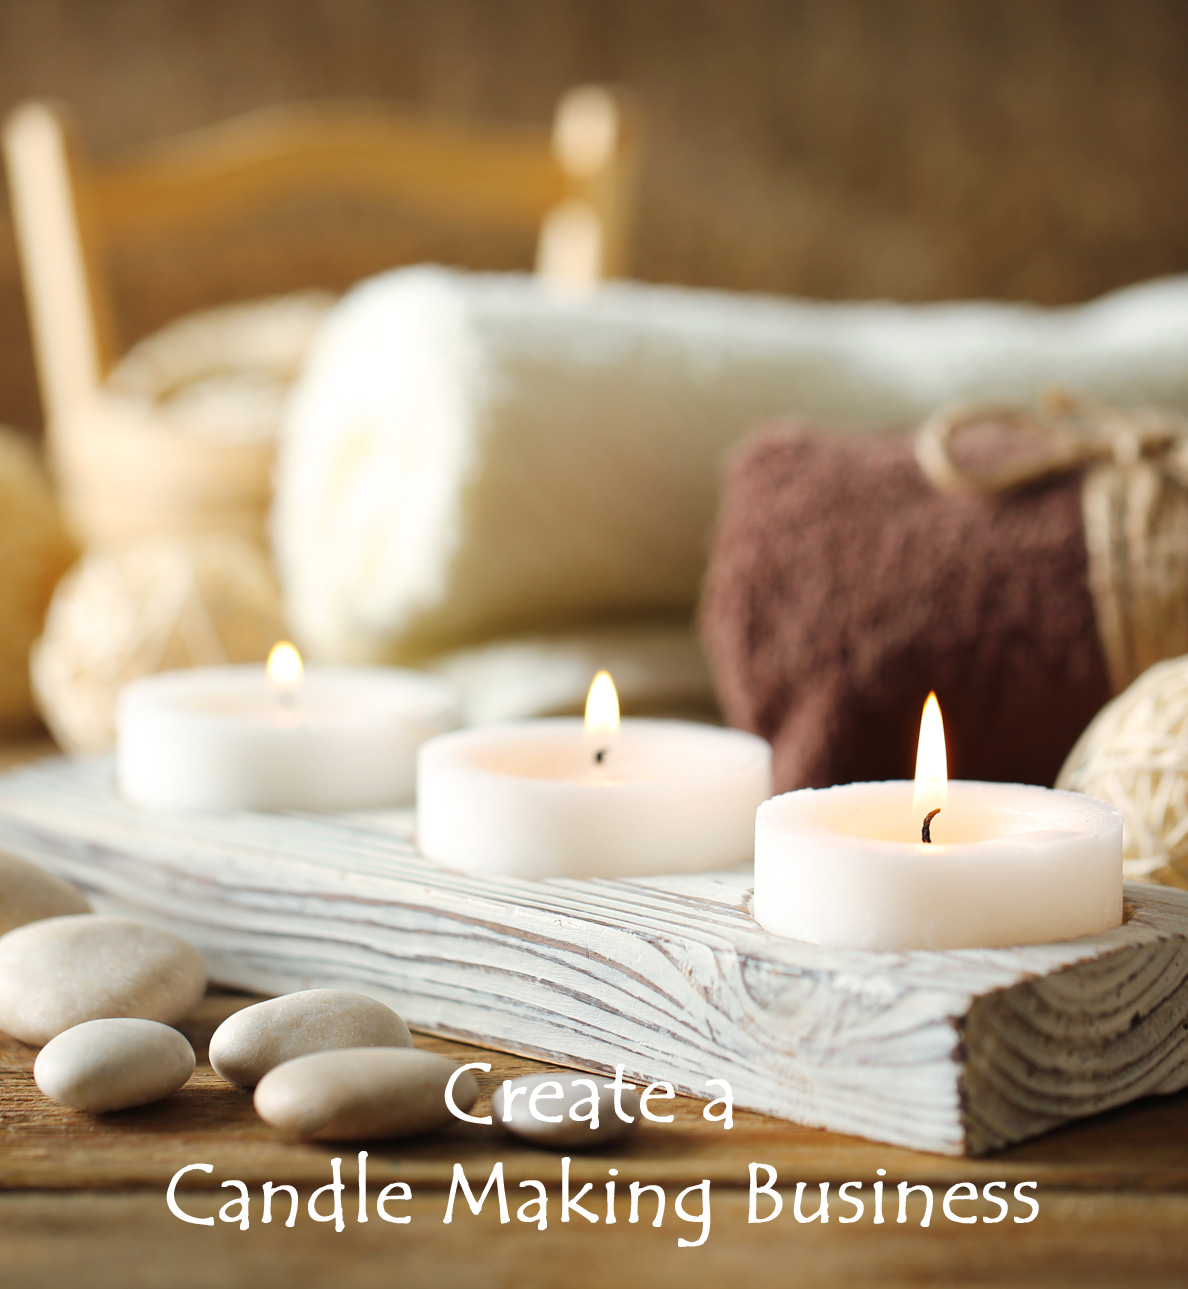 Create a Candle Making Business, Candle Advice